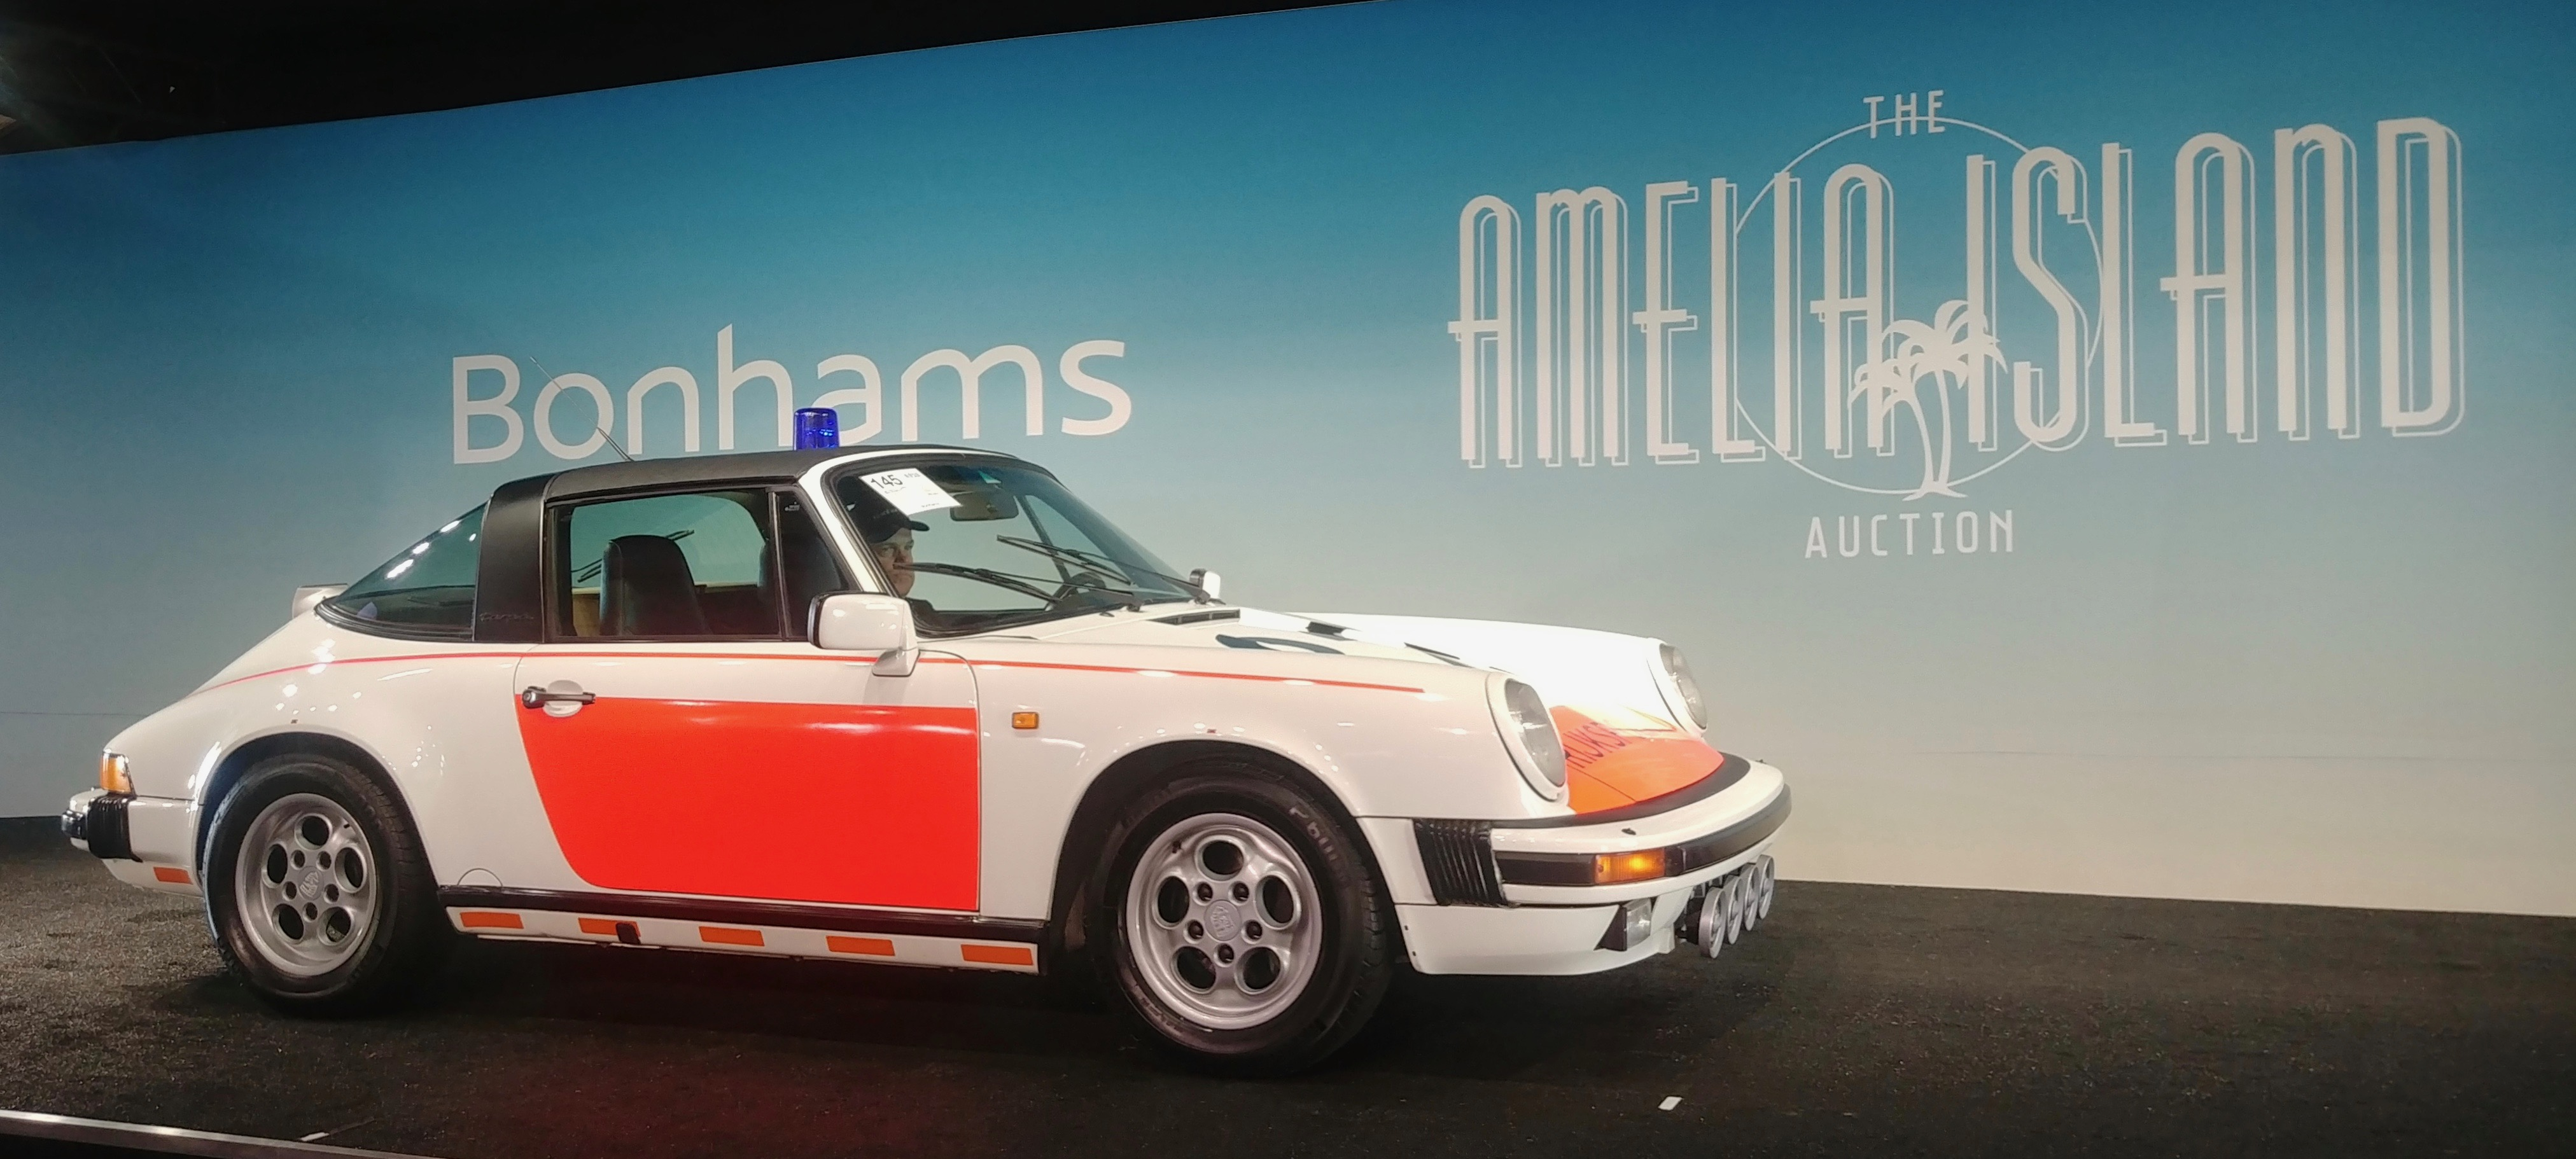 Bonhams opens Amelia auctions with strong showing   ClassicCars.com